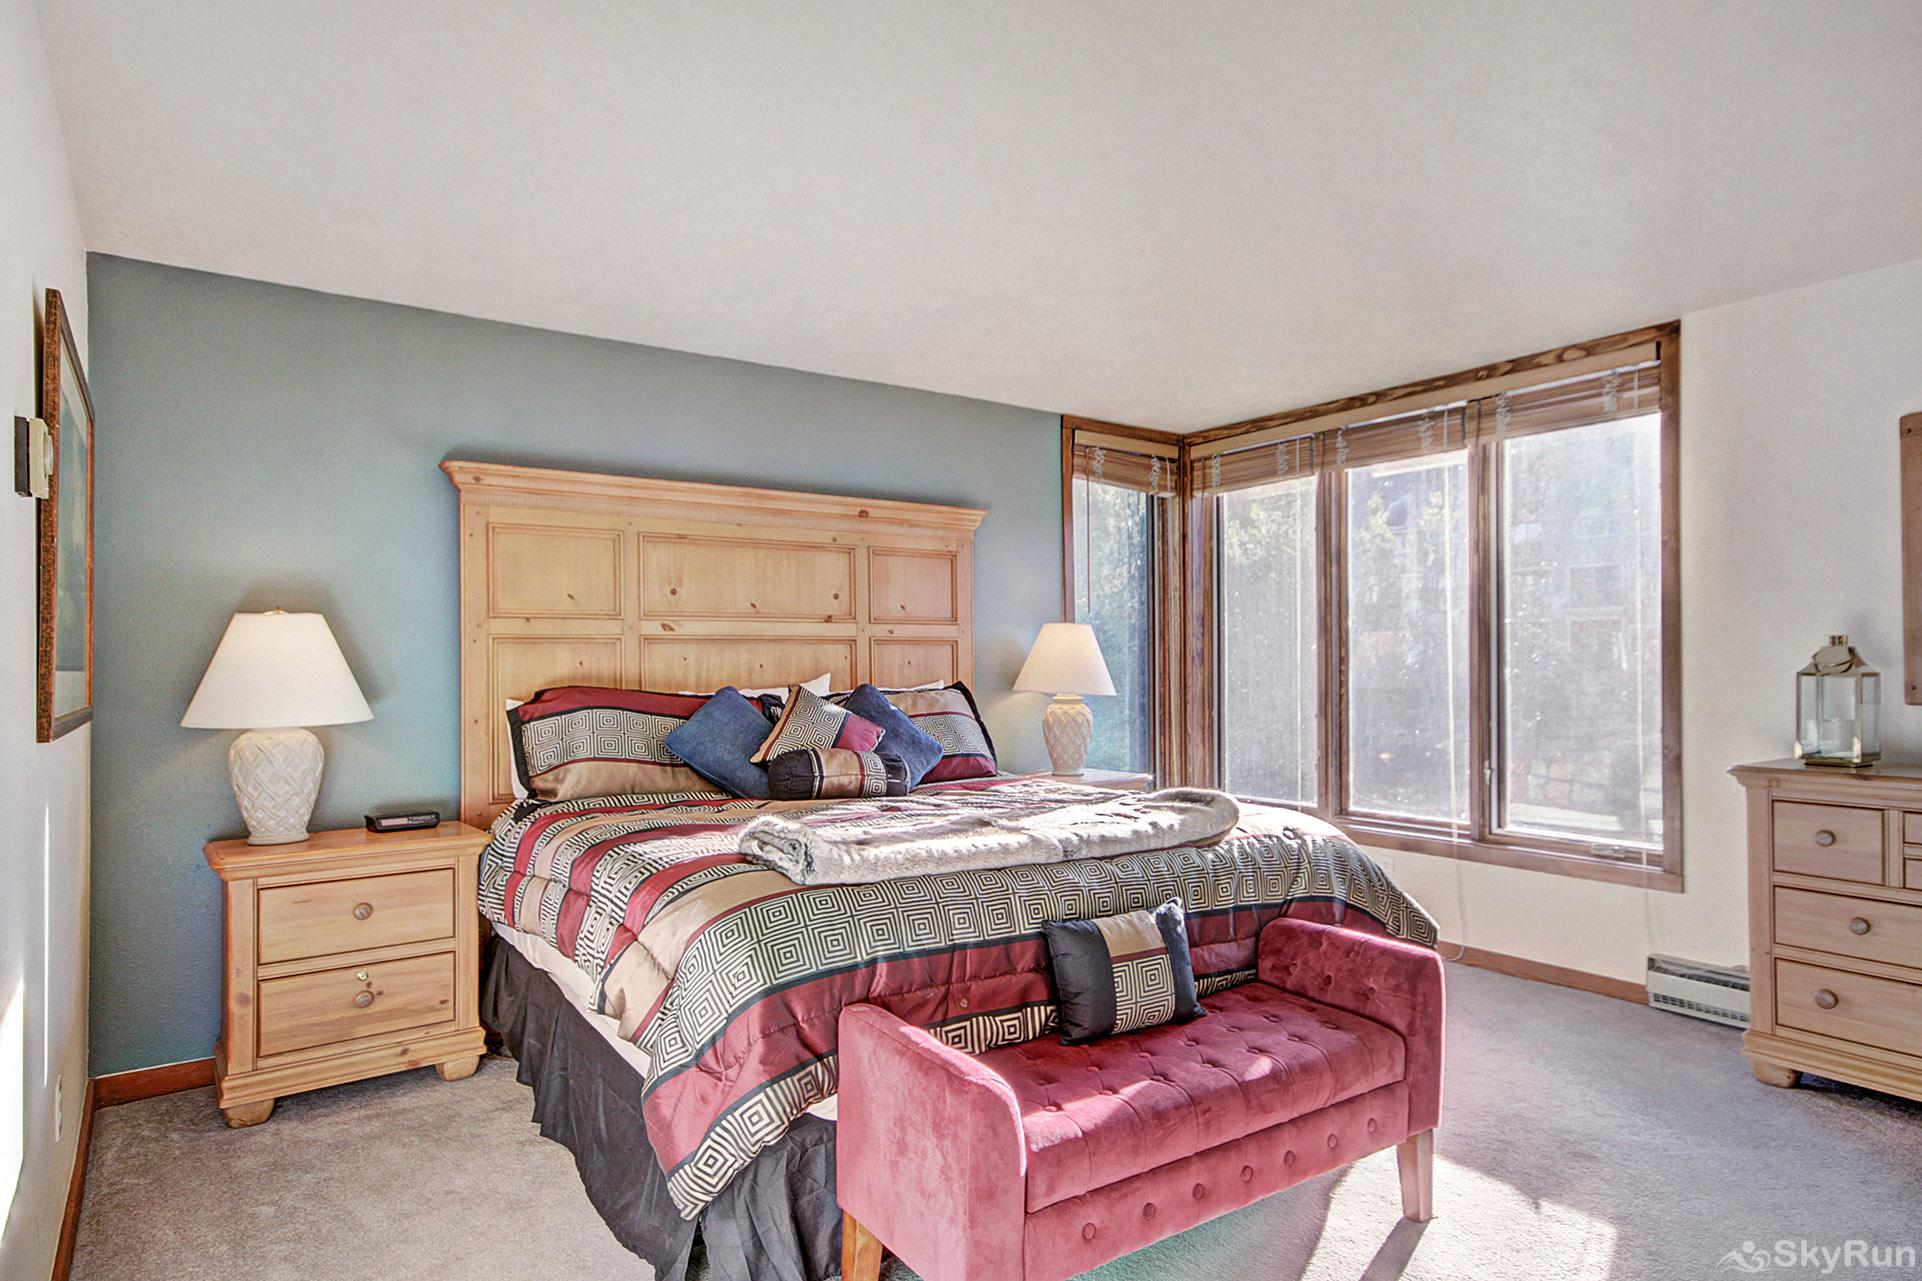 2019 Lodgepole Master Bedroom